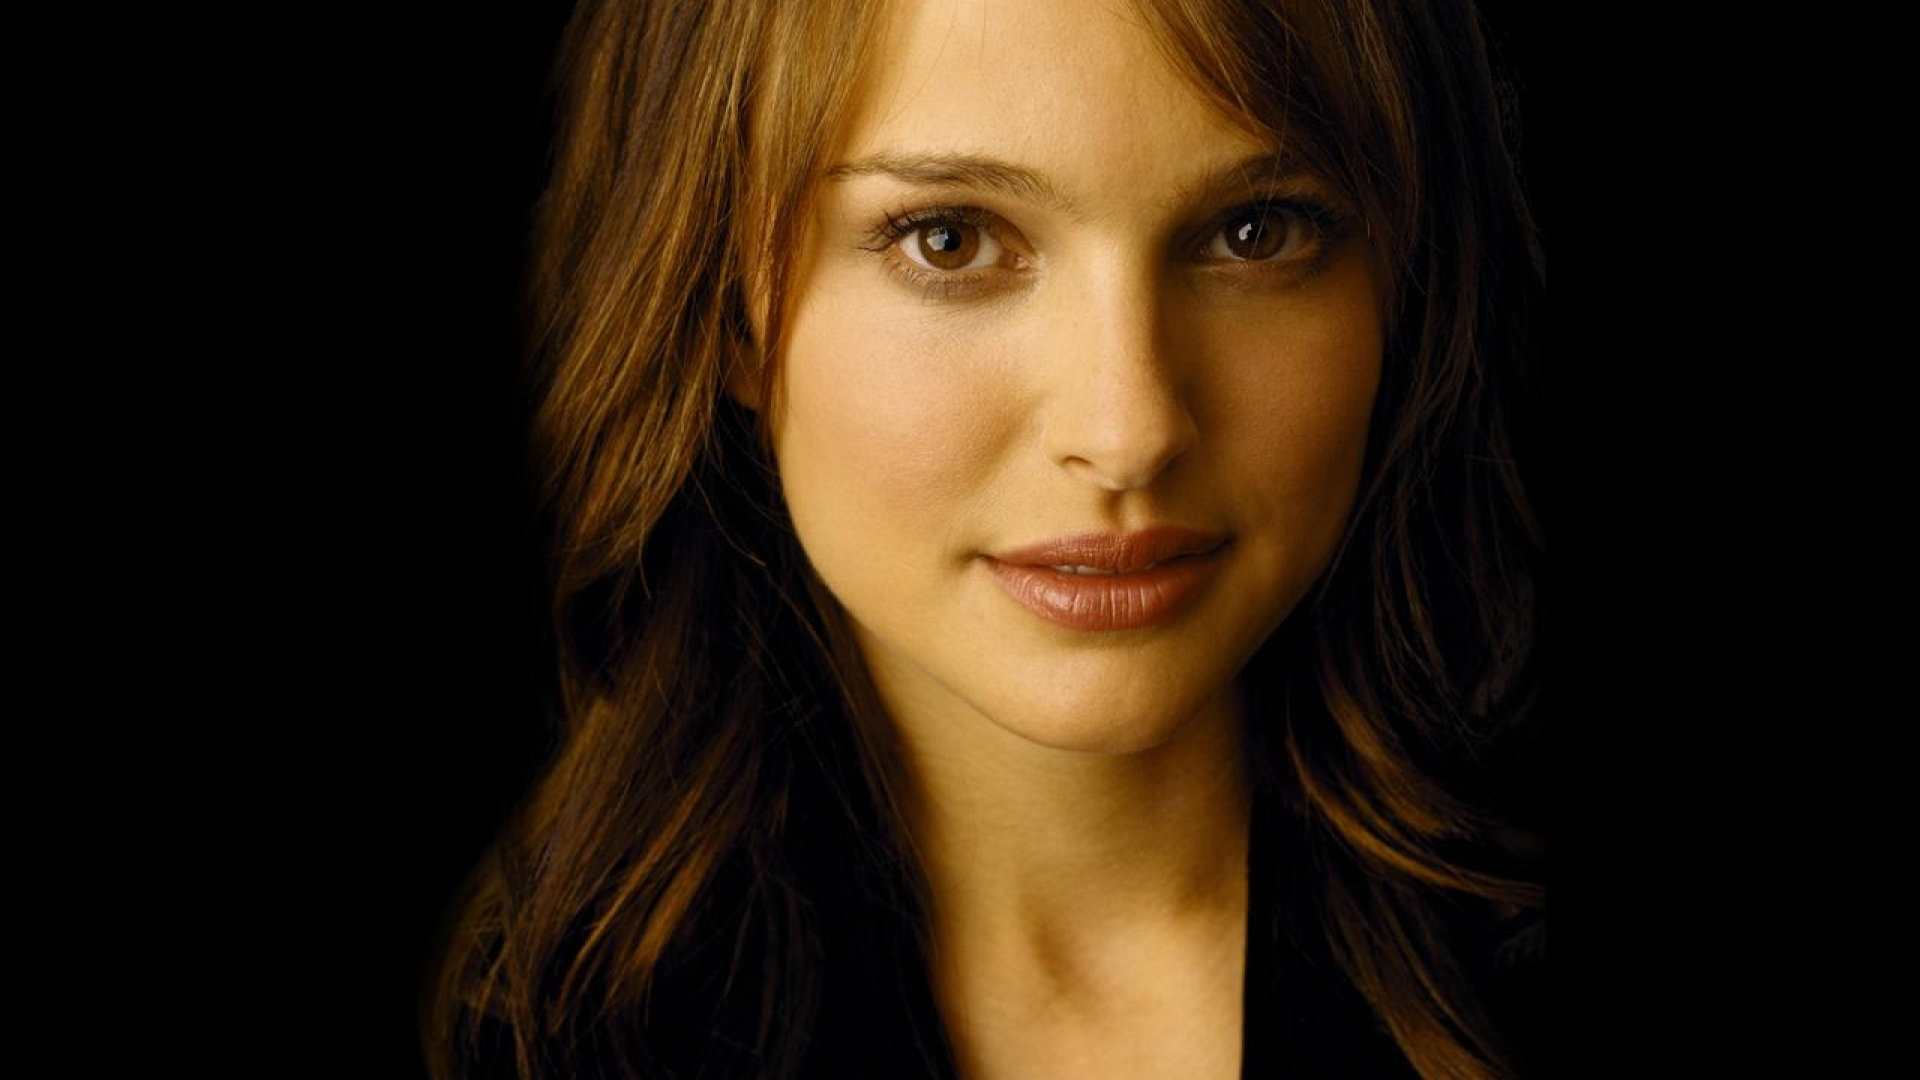 Awesome Natalie Portman free wallpaper ID:238356 for hd 1920x1080 PC